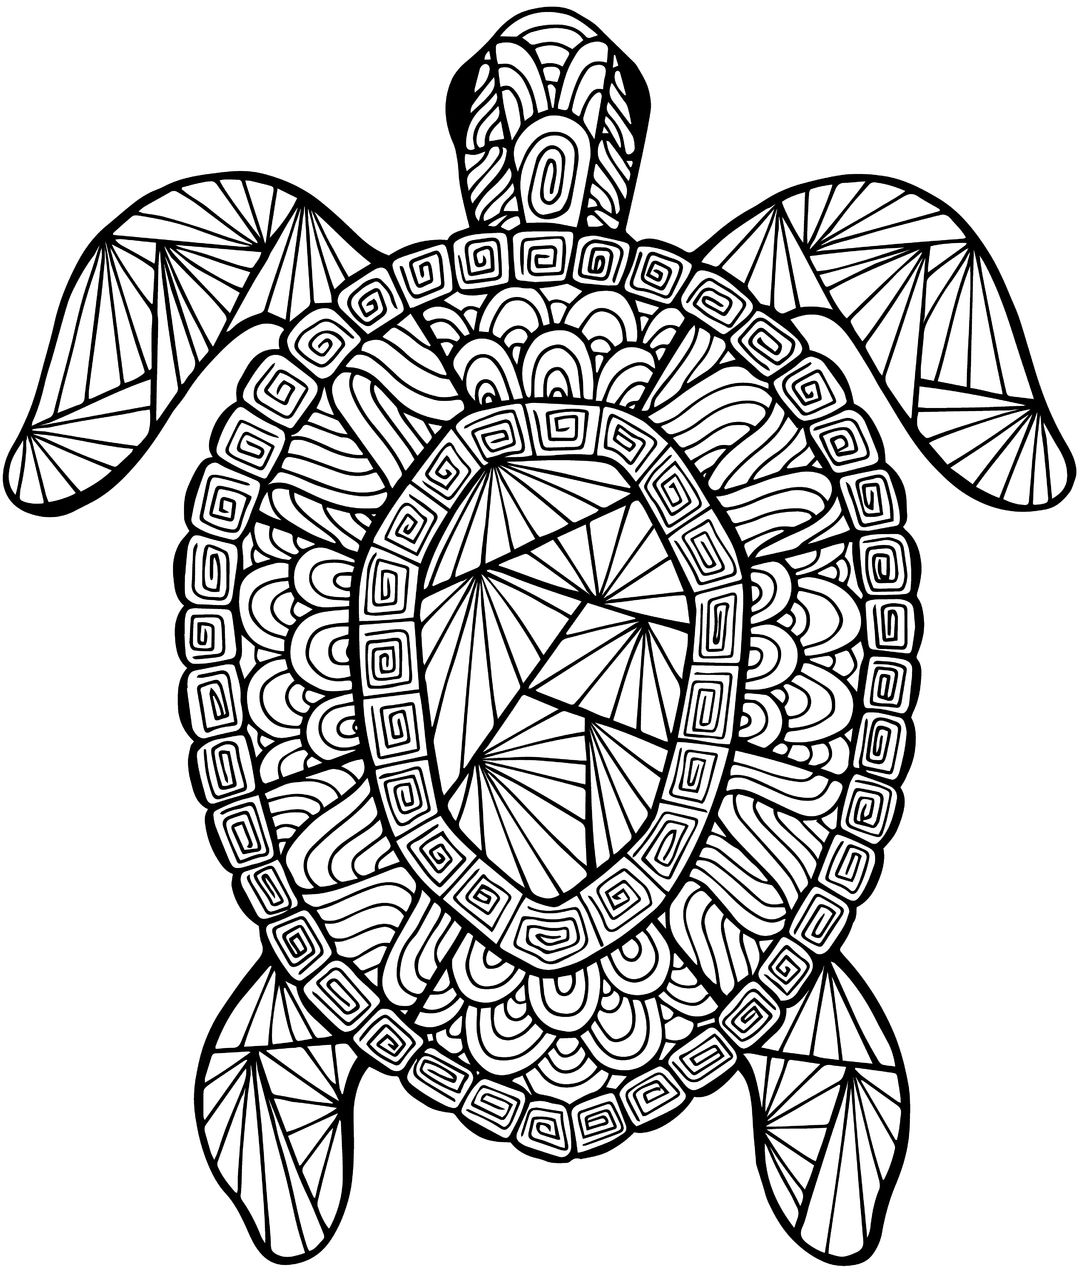 Mandala coloring pages turtles - Detailed Sea Turtle Advanced Coloring Page A To Z Teacher Stuff Printable Pages And Worksheets